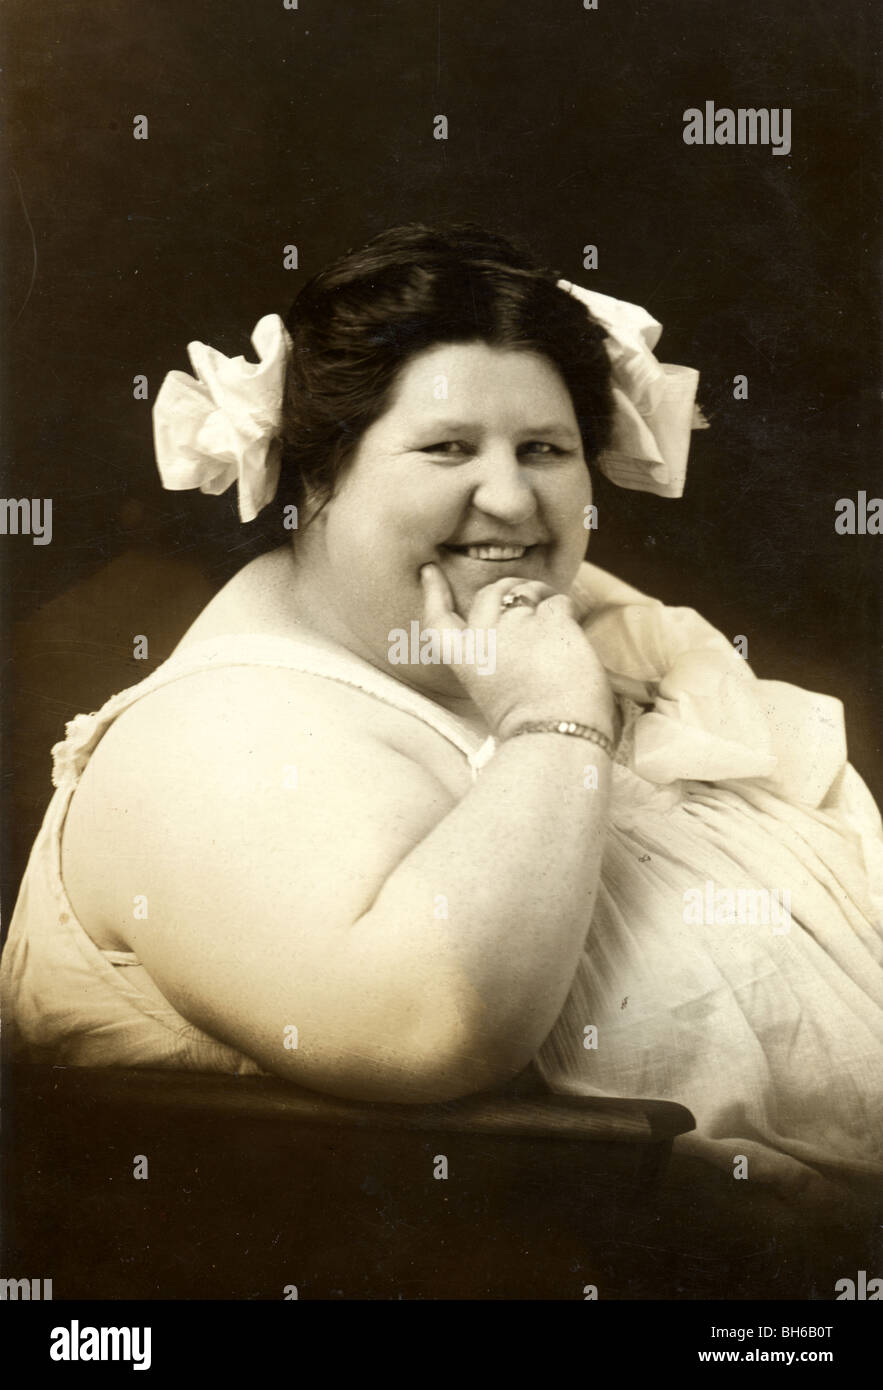 Grosse Dame Image smiling circus sideshow ou grosse dame banque d'images, photo stock